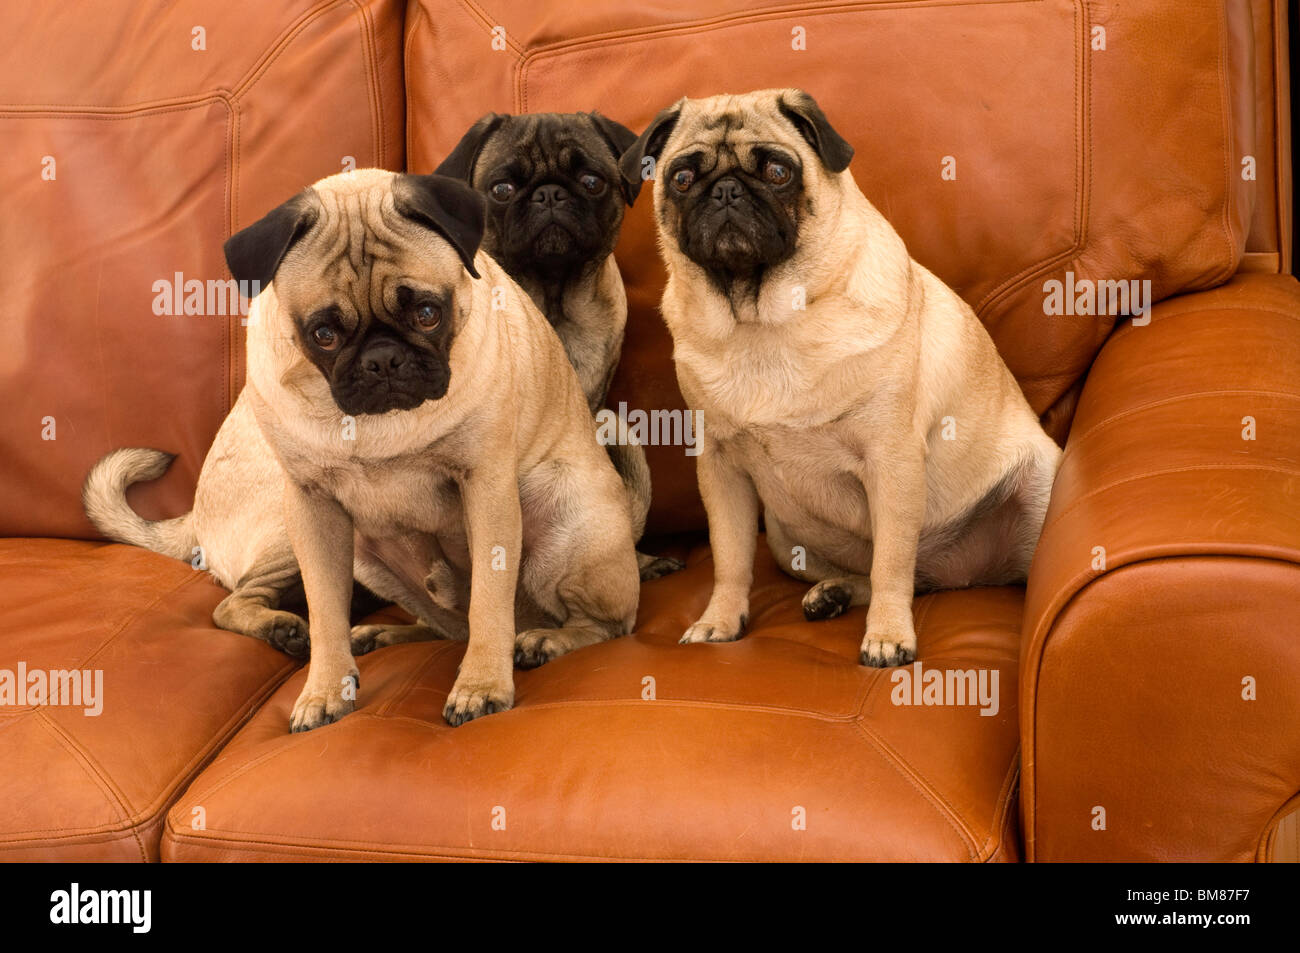 Three Cute Pugs on Leather Couch - Stock Image